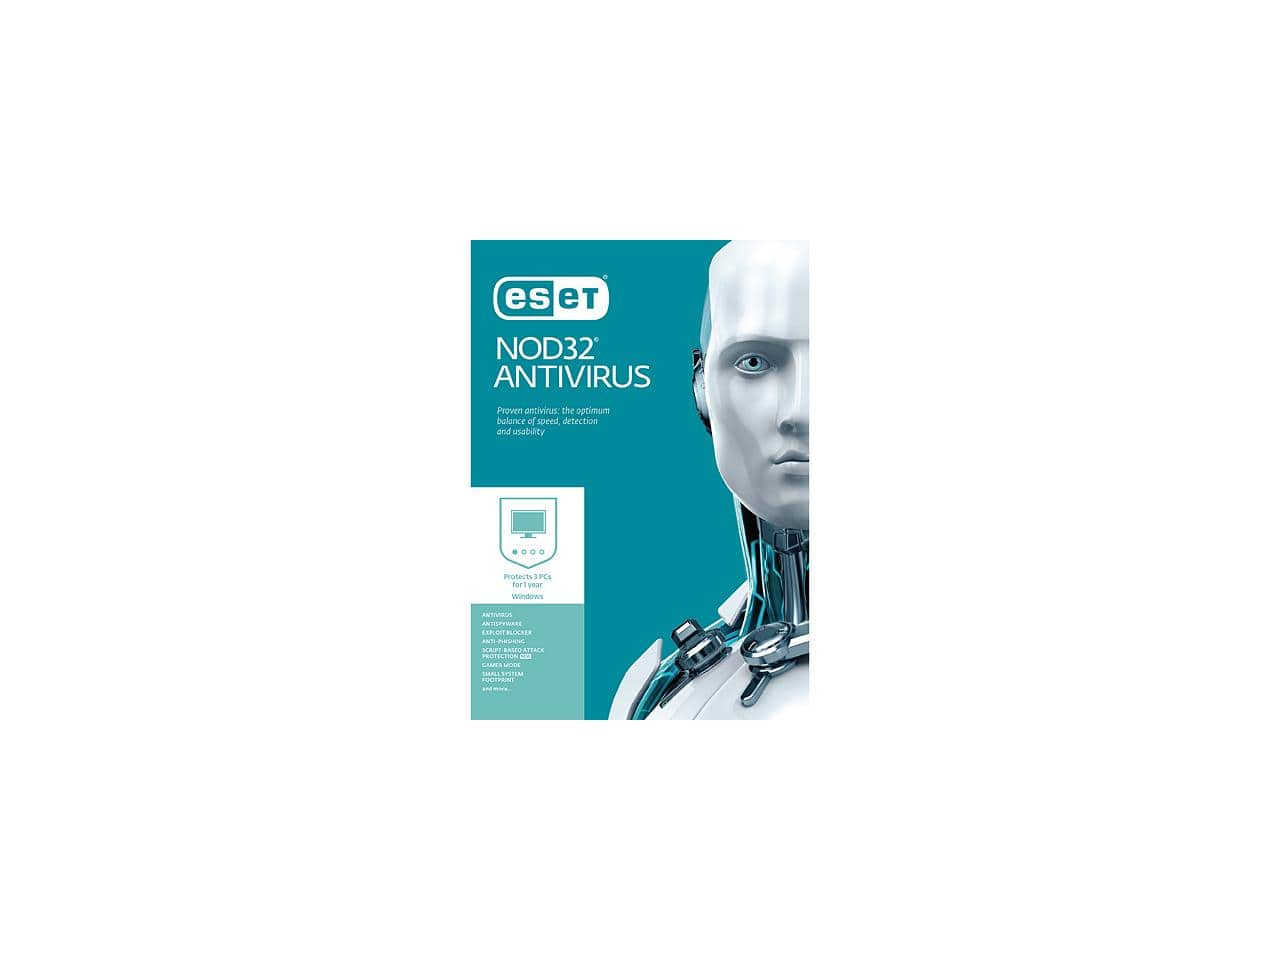 ESET NOD32 AntiVirus 3 PCs $15AC NewEgg.com